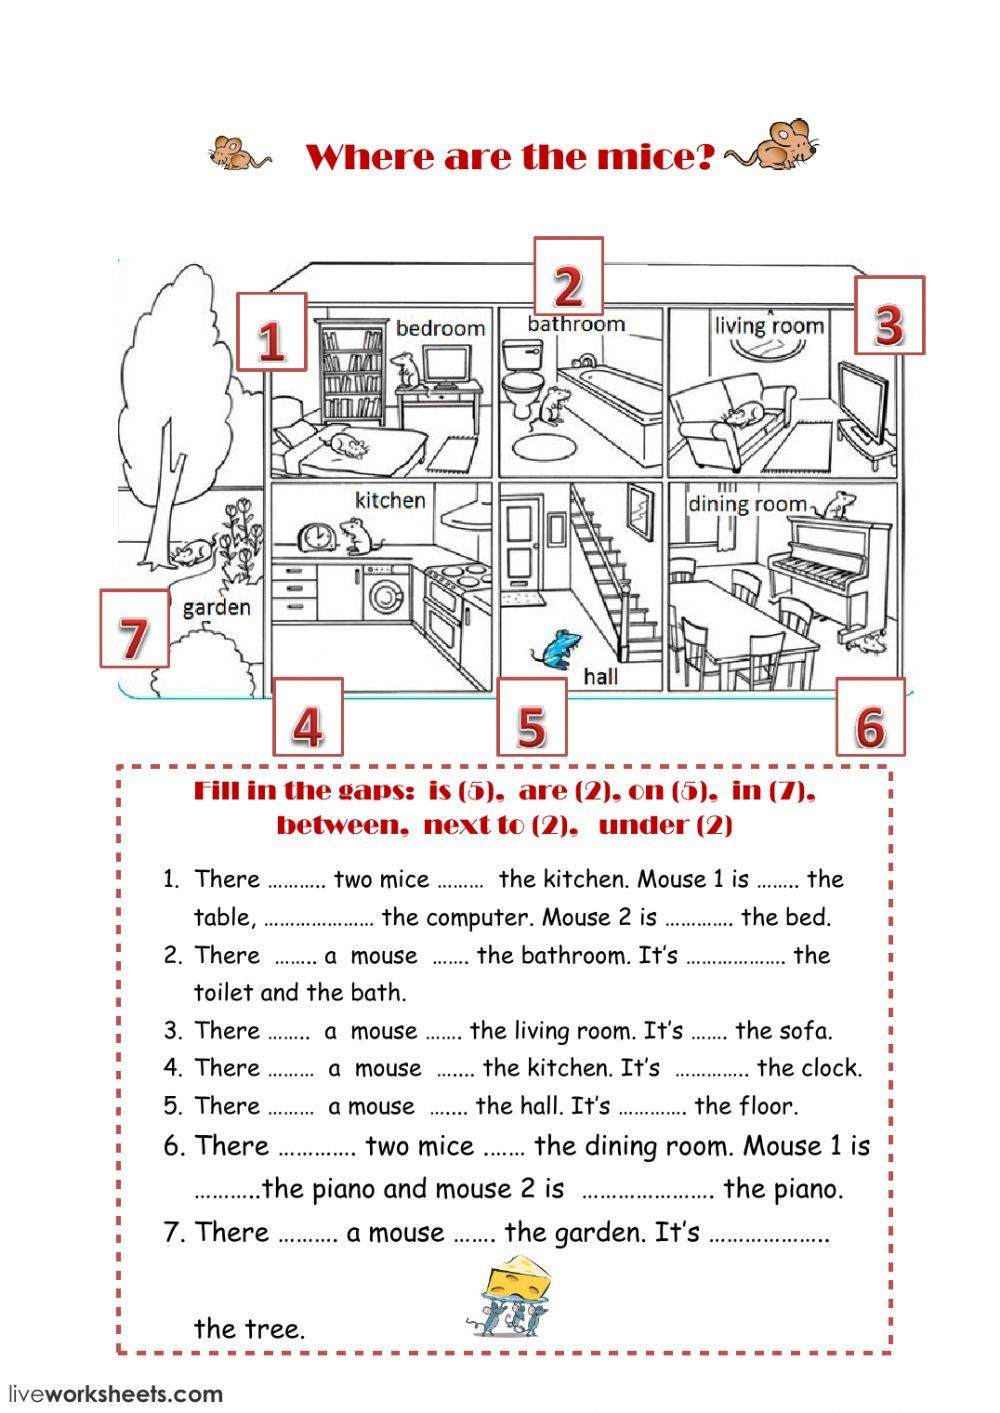 Preposition Worksheets Middle School Prepositions Of Place Interactive and Able Worksheet